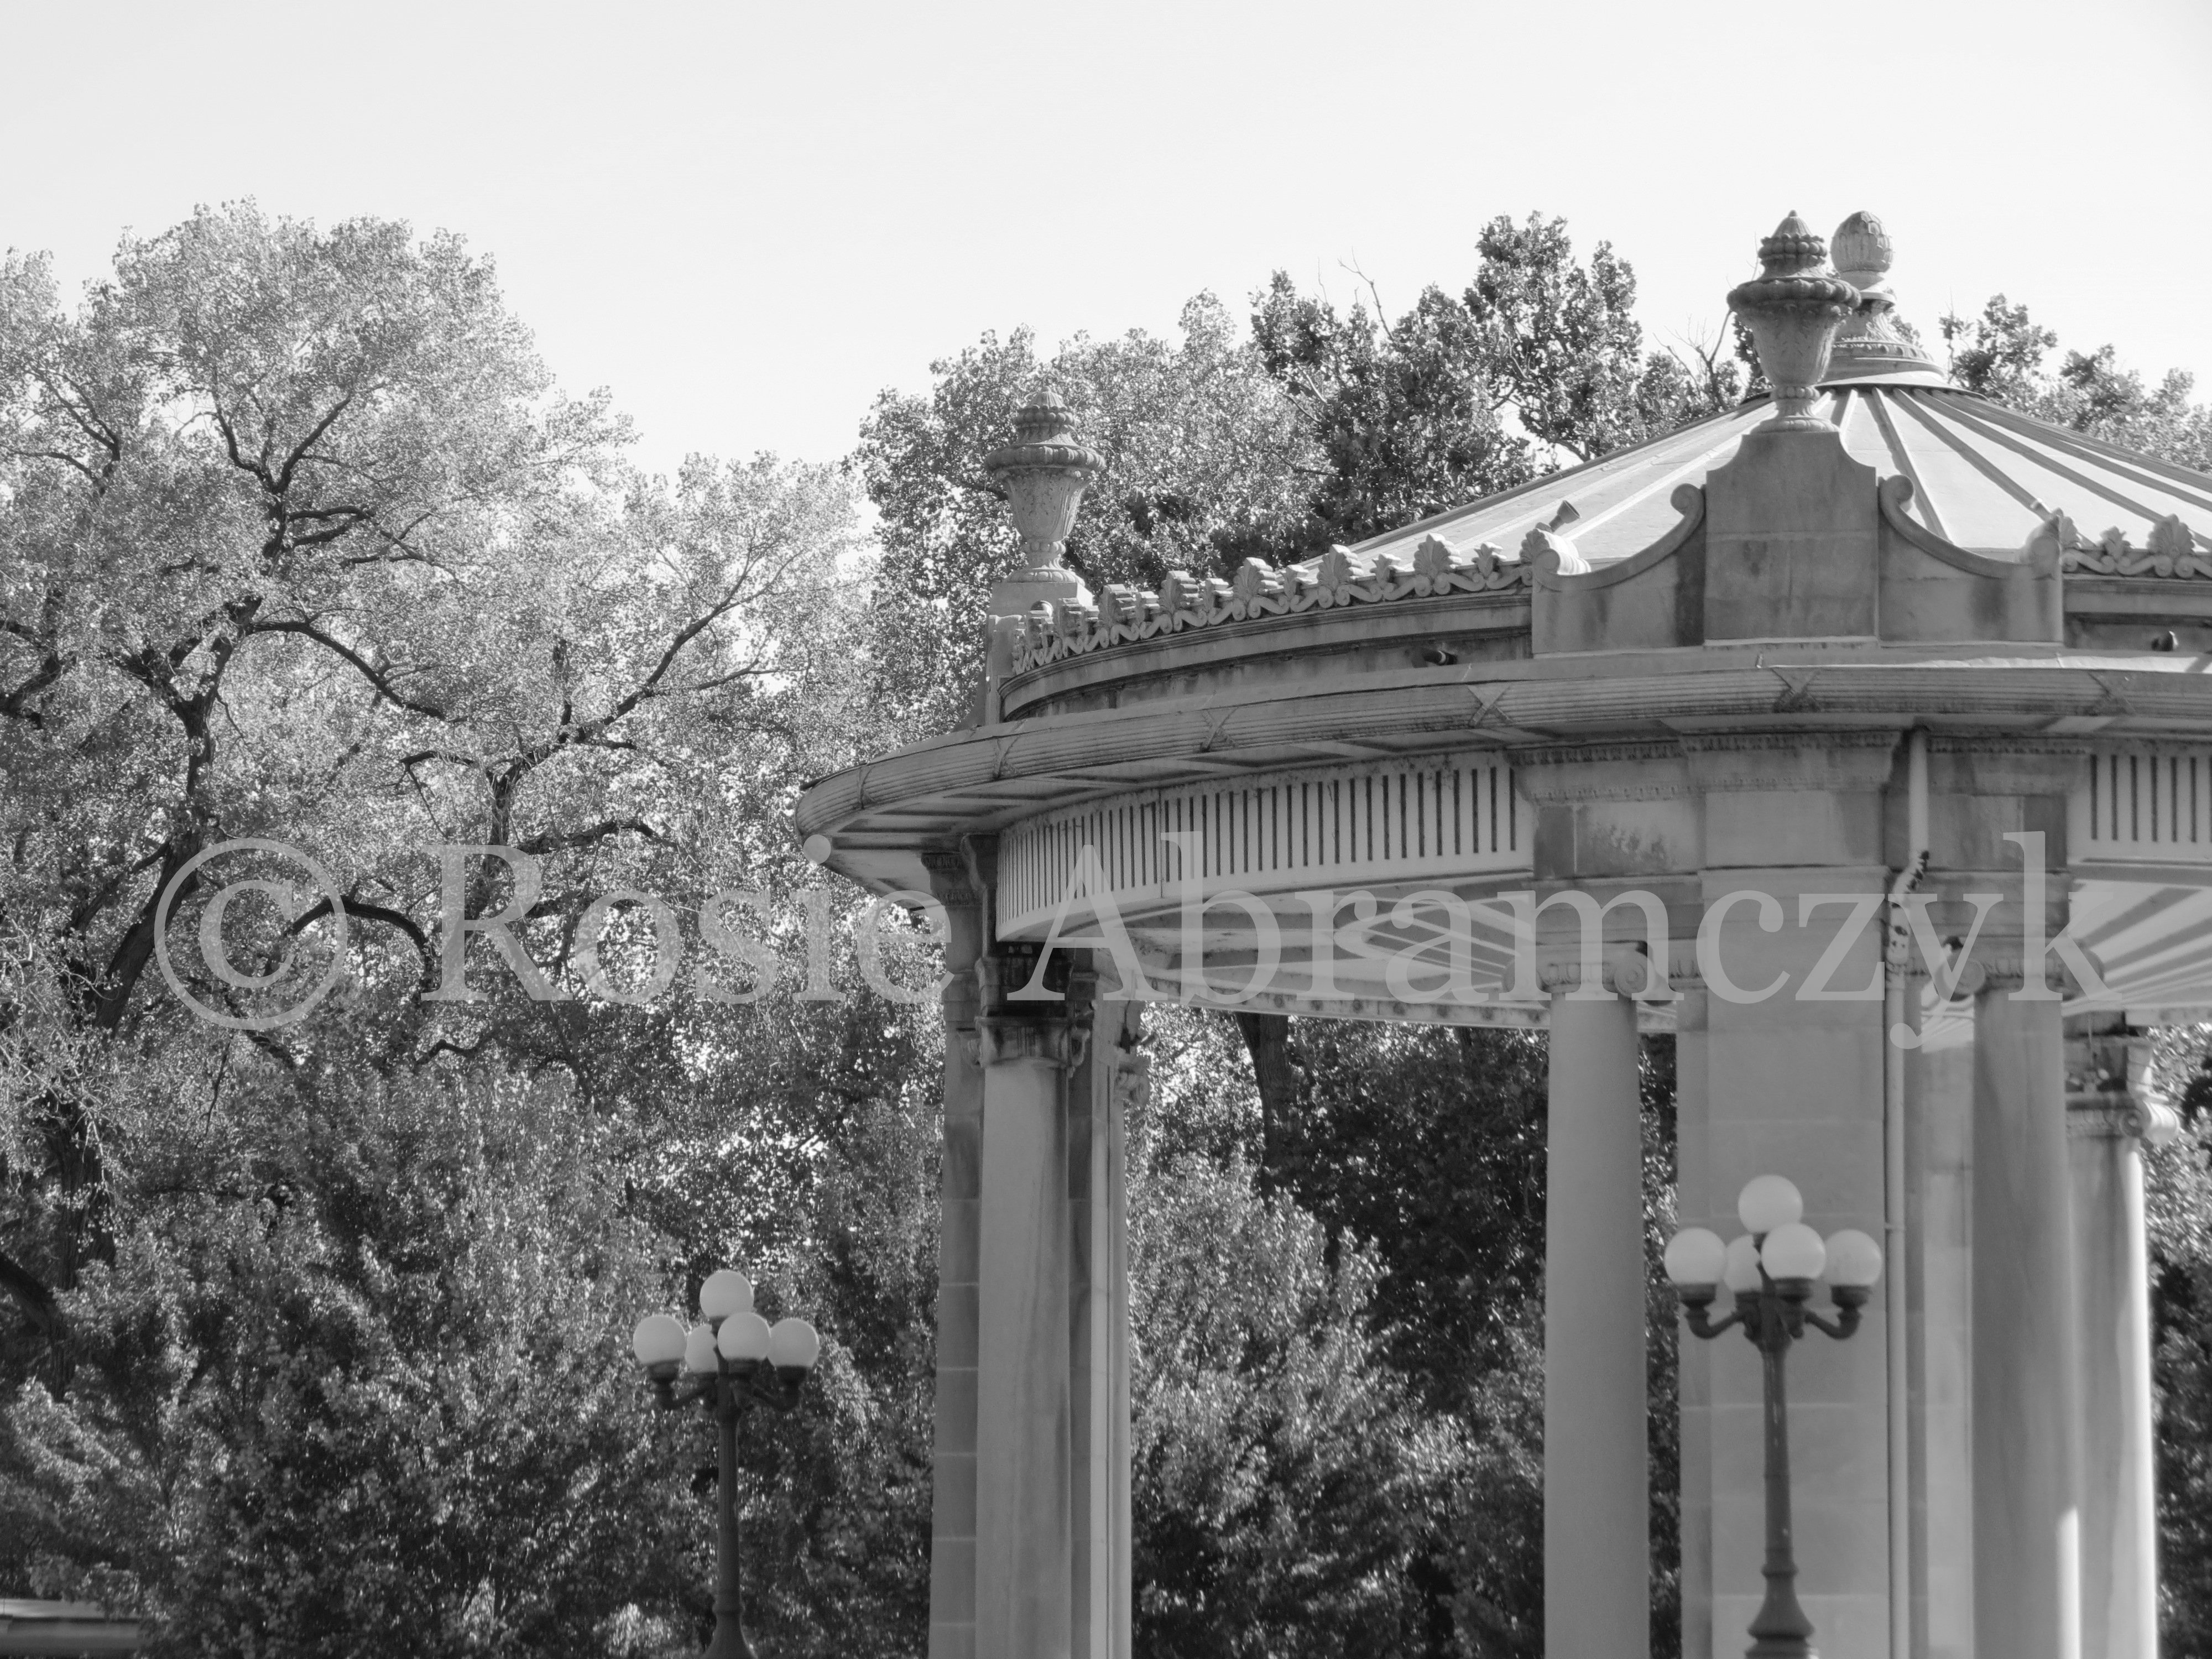 Nathan Frank Bandstand Near the Muny, St. Louis, by Rosie Abramczyk, Photo, 2014